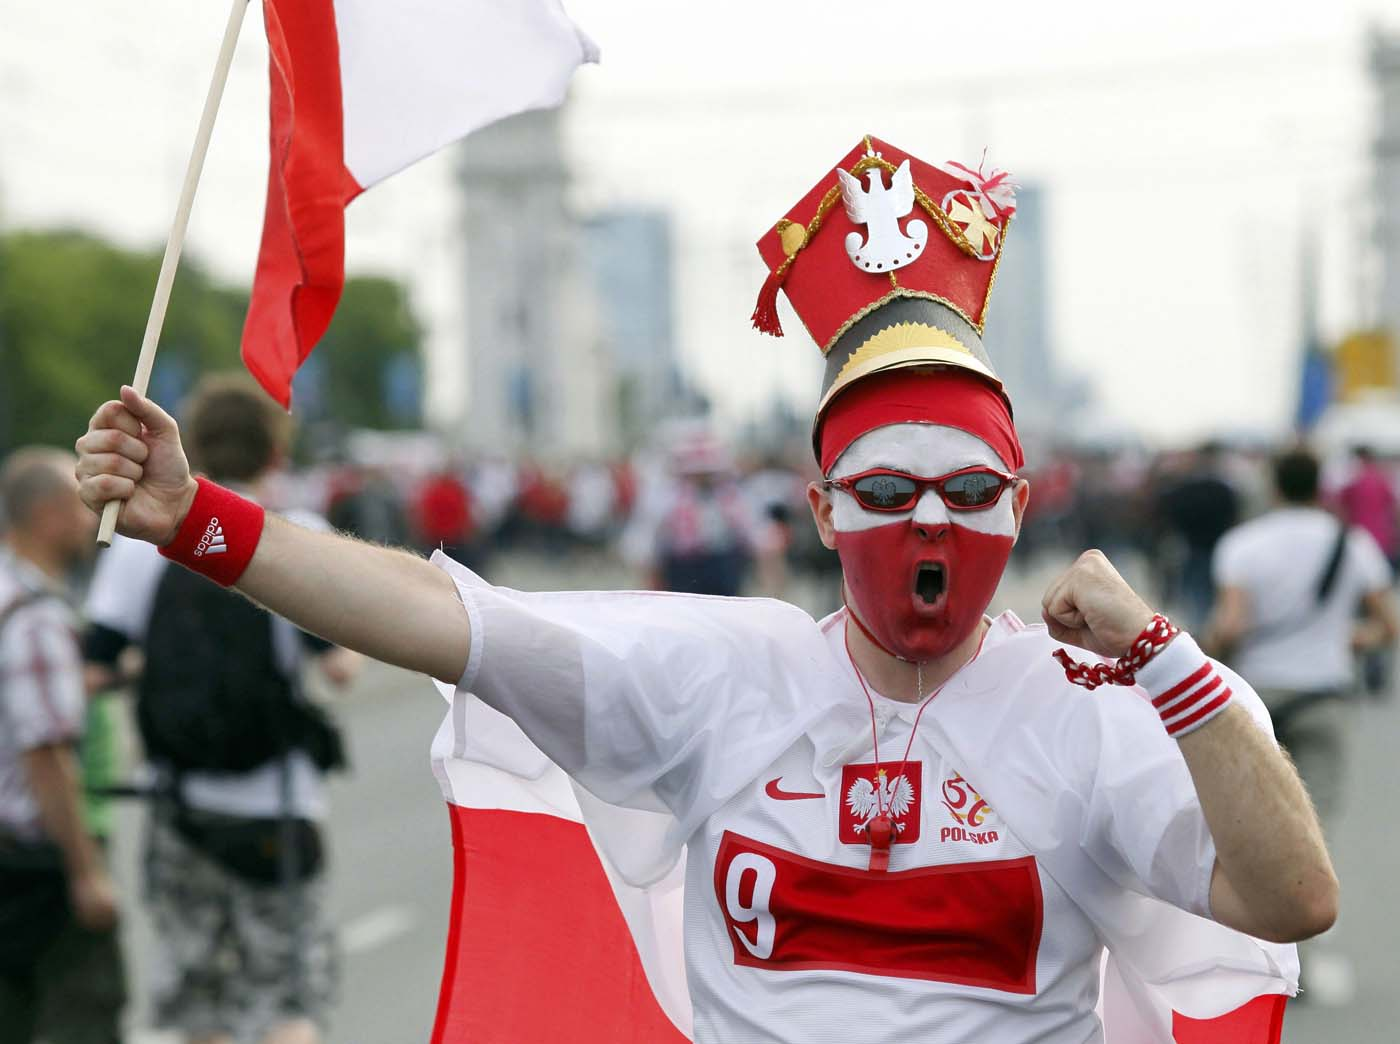 A Polish soccer fan shouts on his way to the National Stadium in Warsaw, June 12, 2012. Russia on Tuesday will play Poland in their Euro 2012 Group A soccer tournament in Warsaw. (Jerzy Dudek/Reuters)